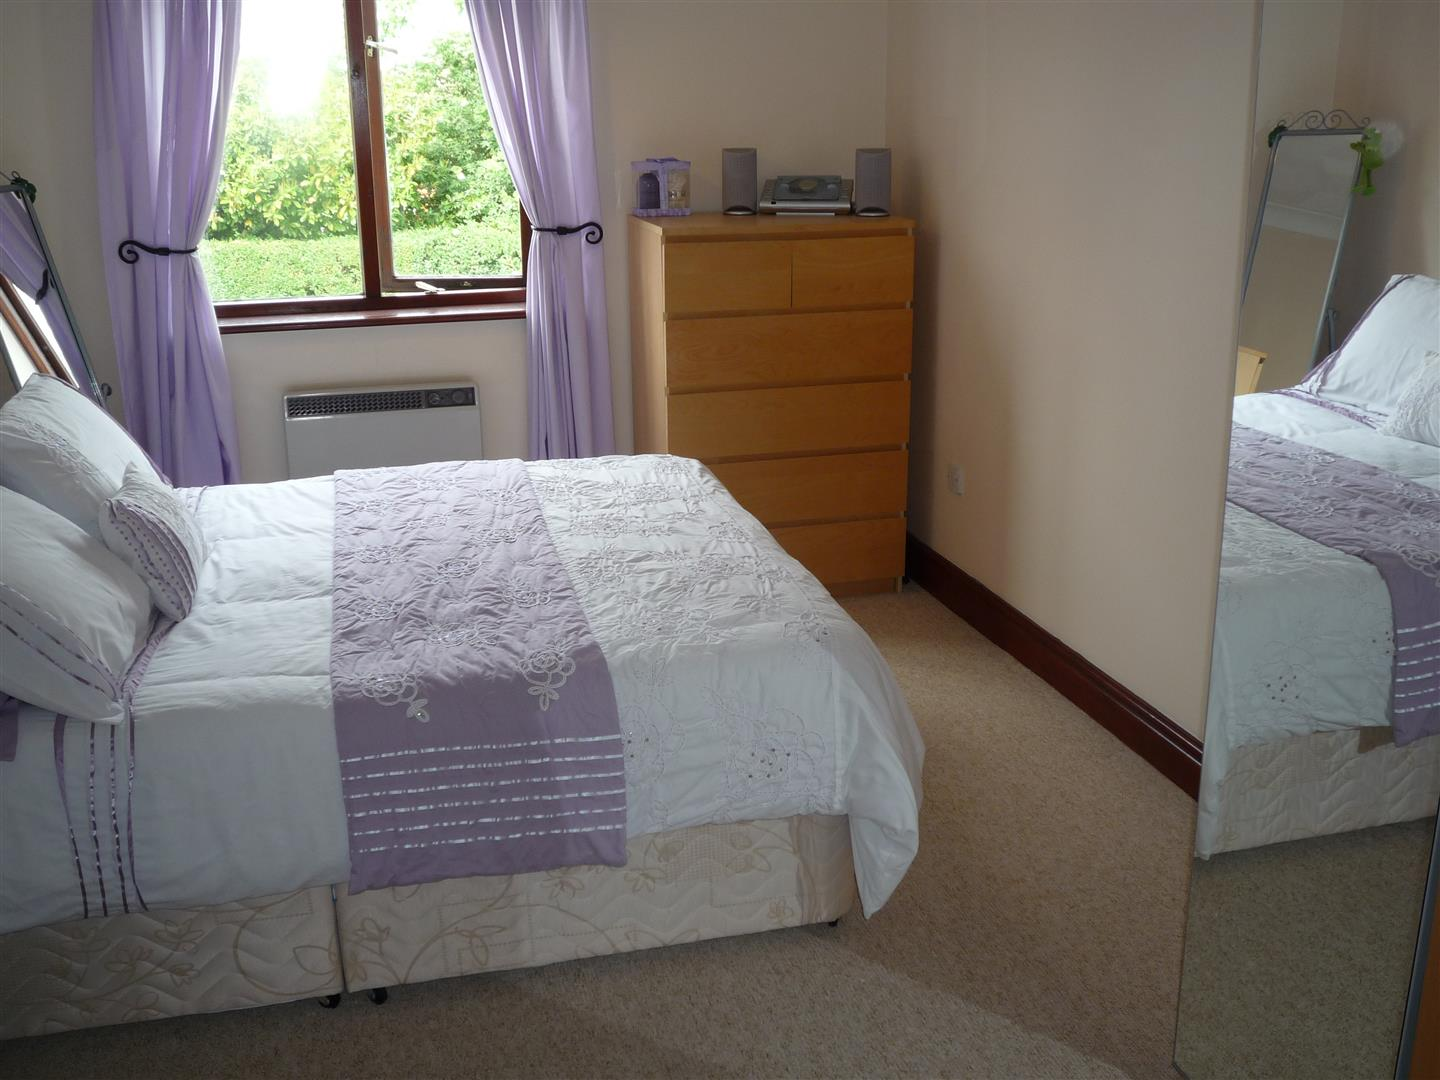 2 bed flat to rent in Long Sutton Spalding, PE12 9RL  - Property Image 6